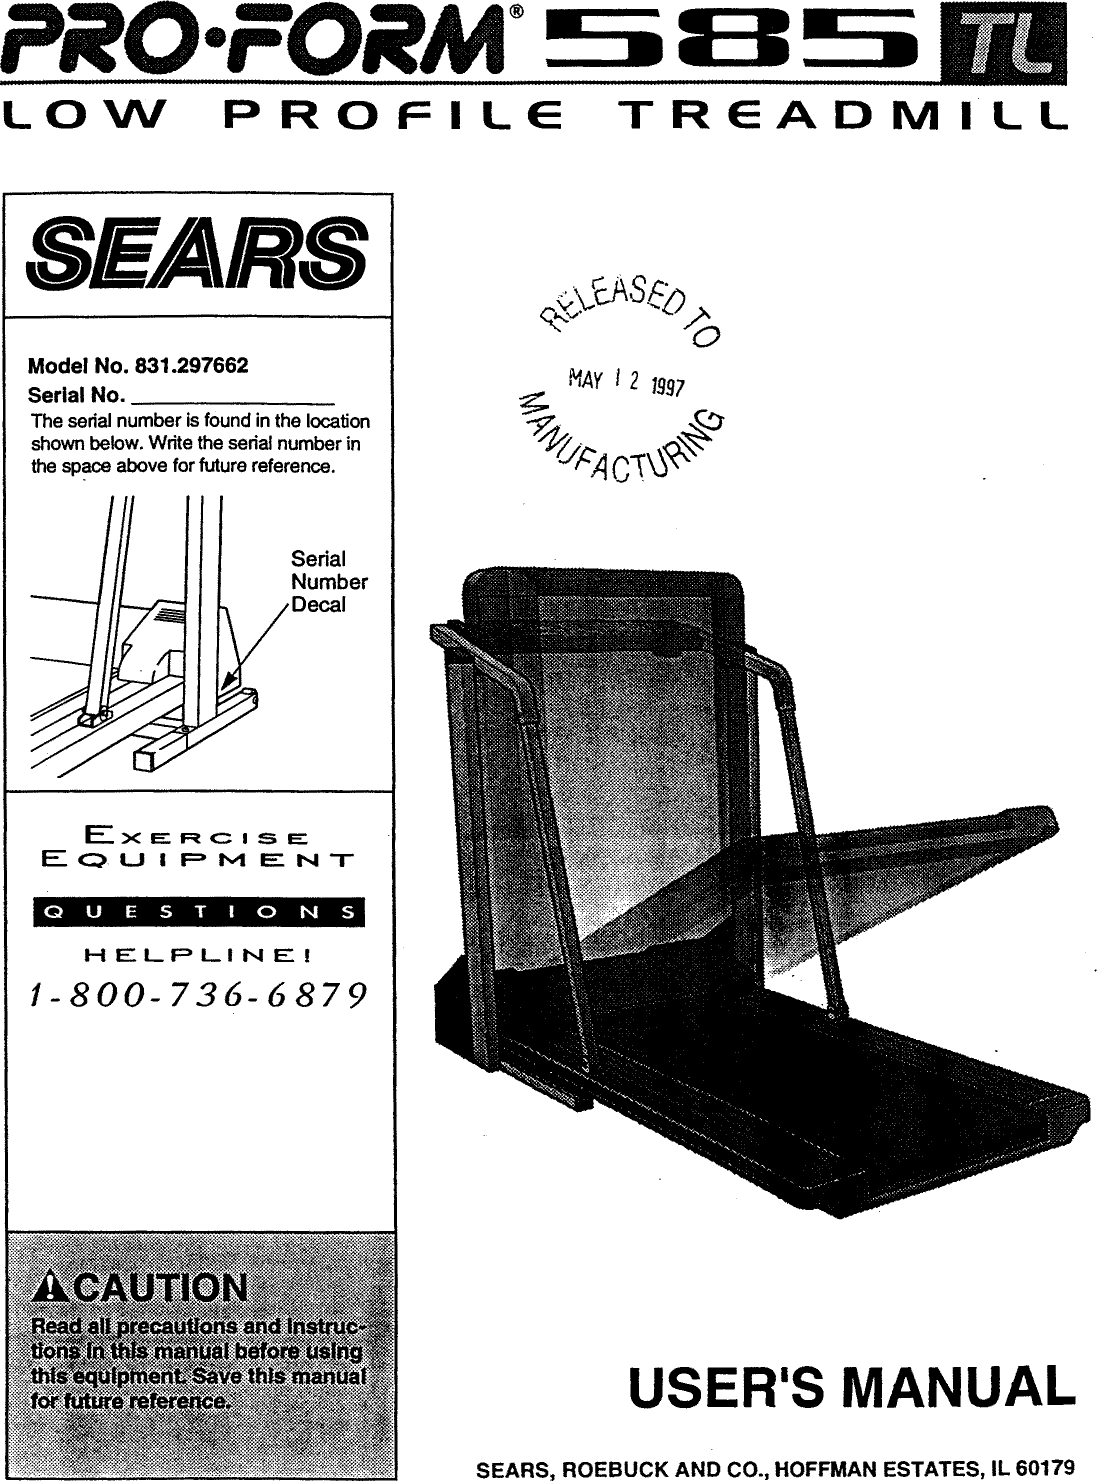 Sears Pro Form 585 831 297662 Users Manual